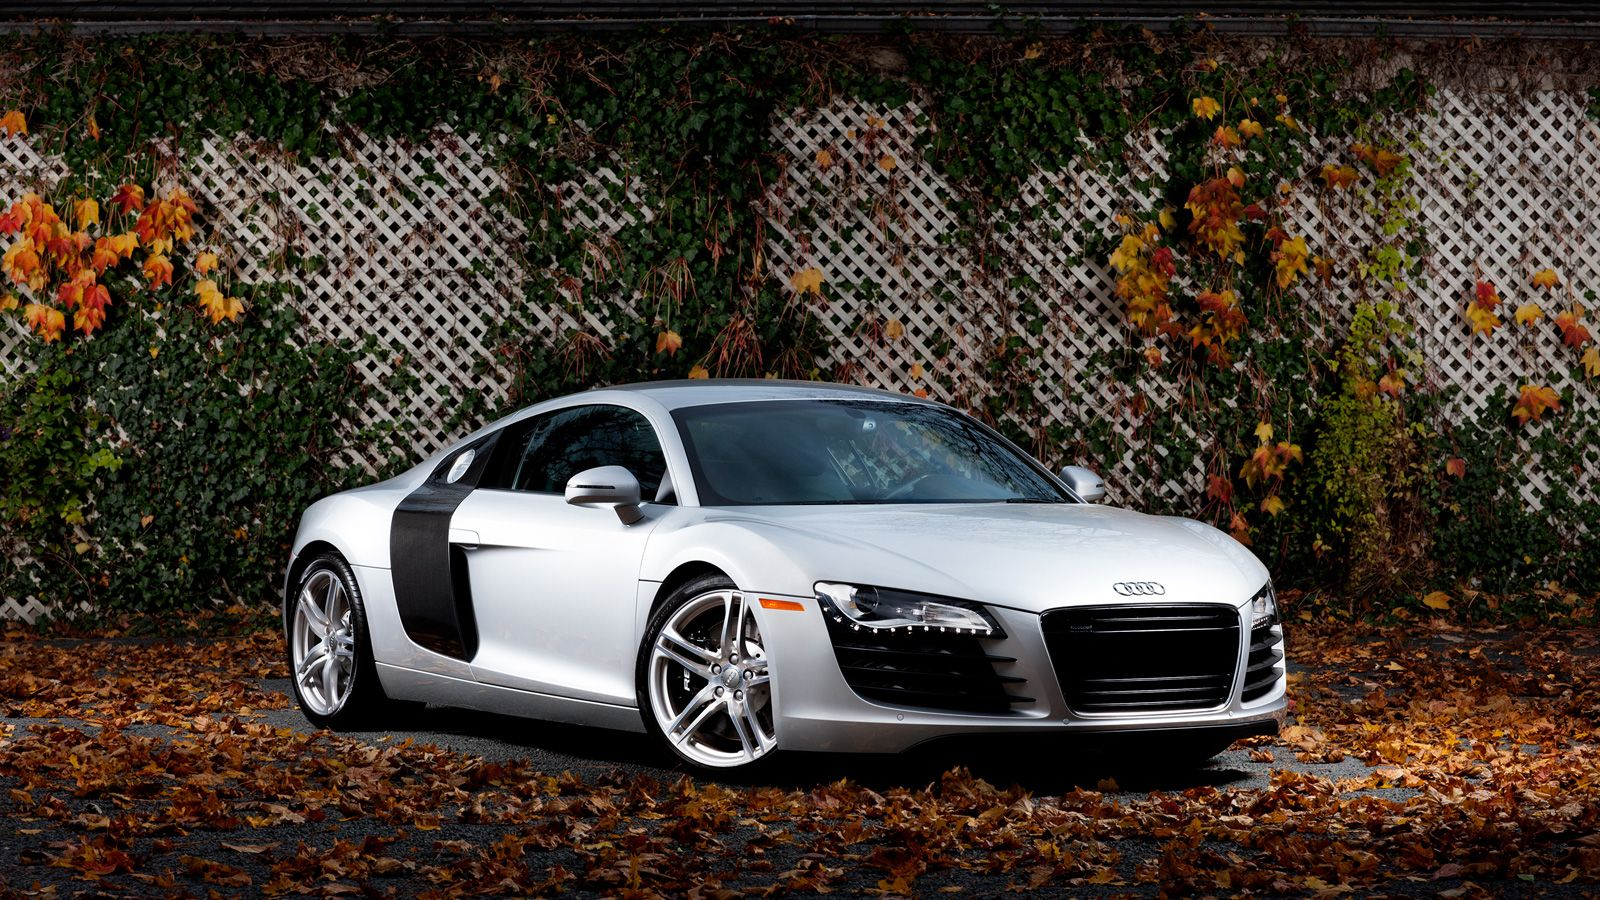 Pin By Leticia Winters On Getting Around Audi R8 Wallpaper Audi Audi R8